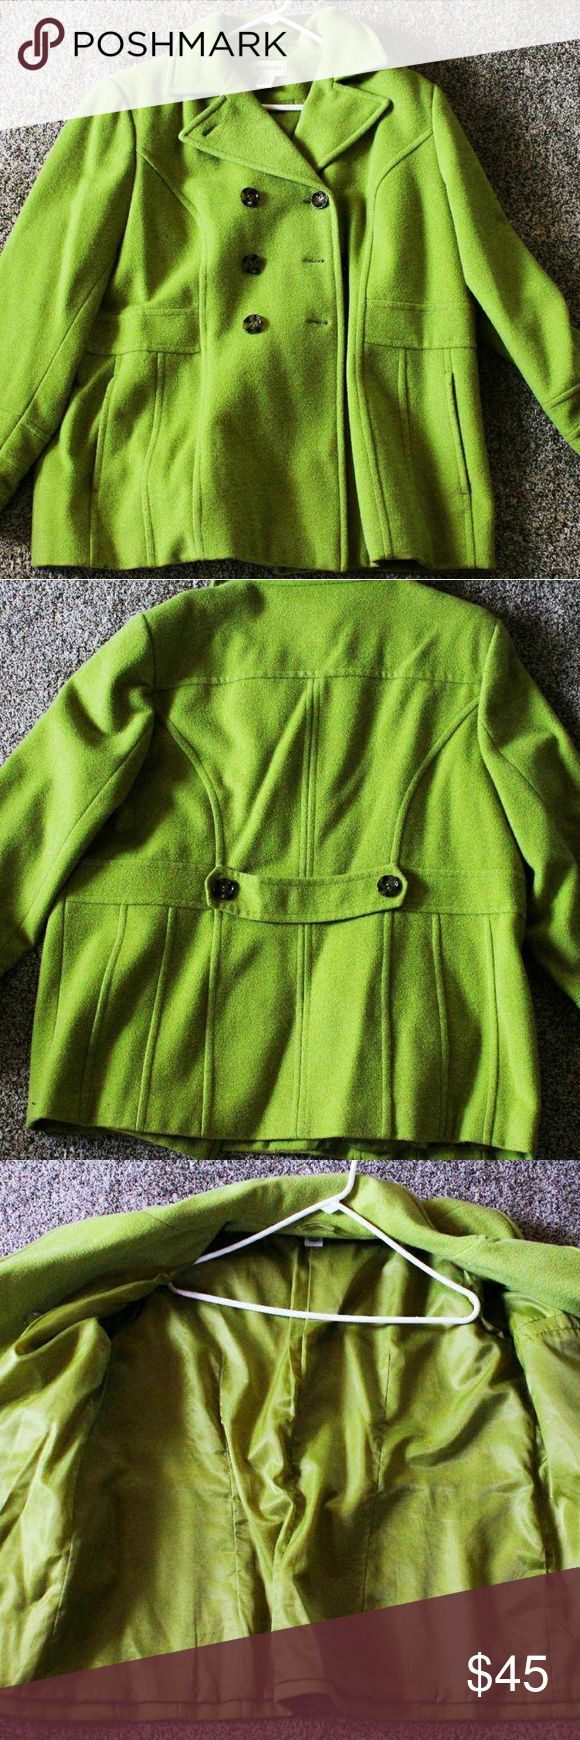 Green Plus Size Peacoat Super soft plus size peacoat; Light Spring Green color; Size 1x; Like New Condition St. John's Bay Jackets & Coats Pea Coats